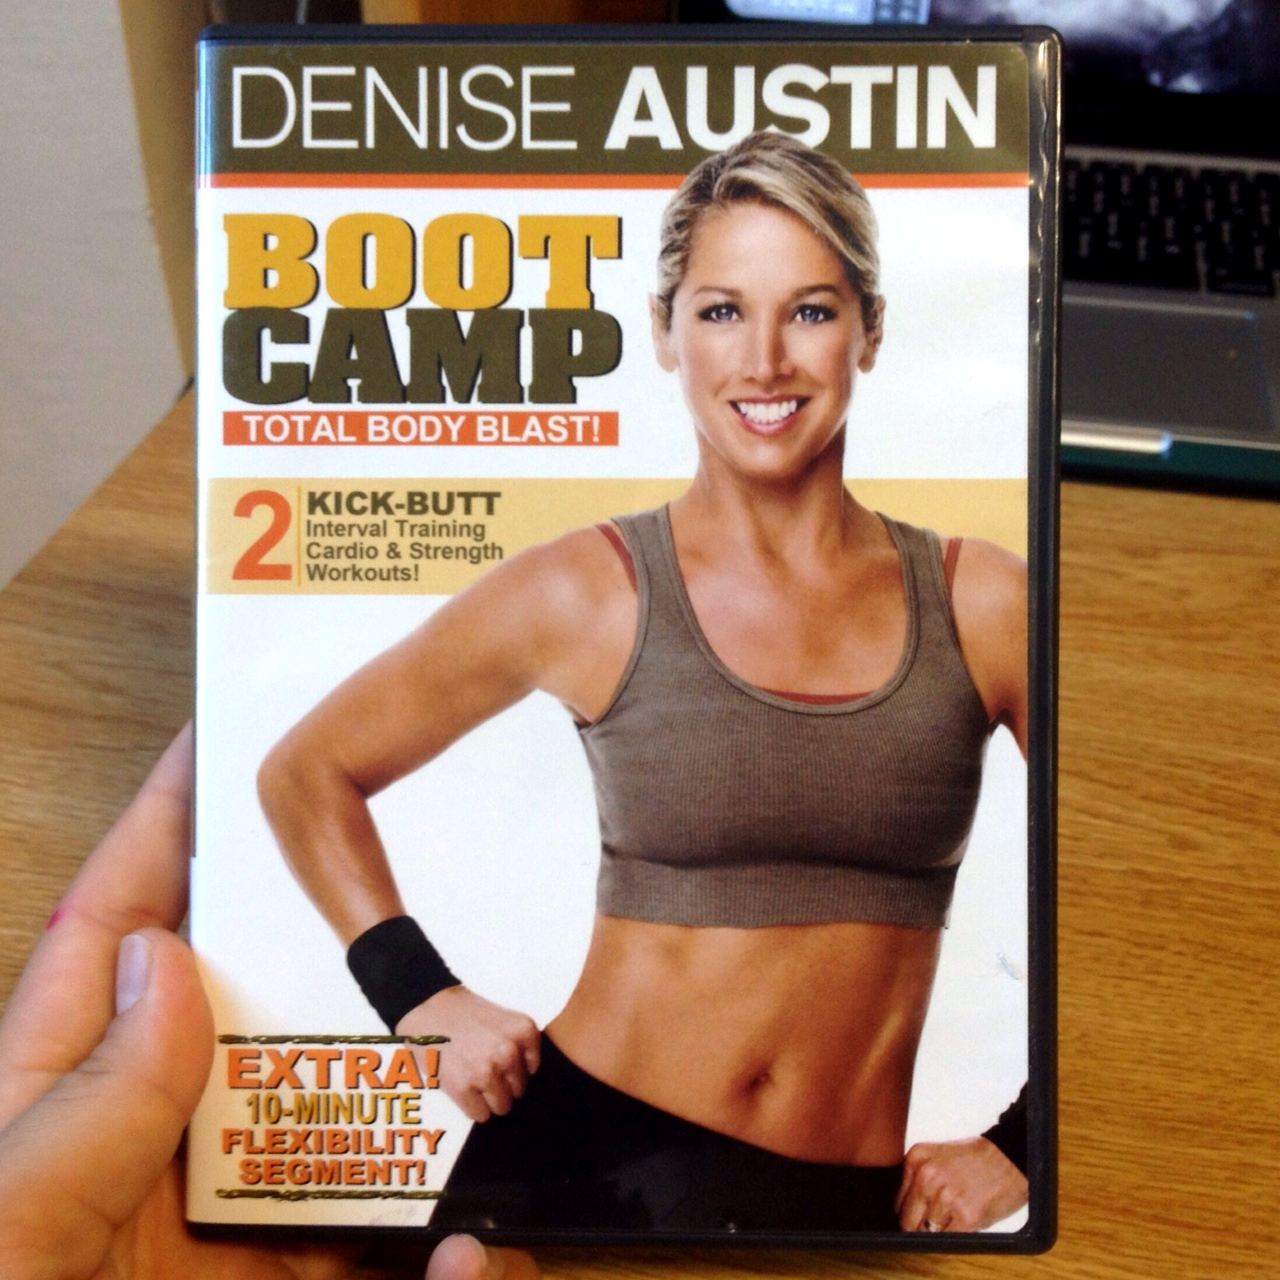 Charlotte S Fitness Dvd Reviews: Mojo » Fitness DVD Review Number Two : Denise Austin's